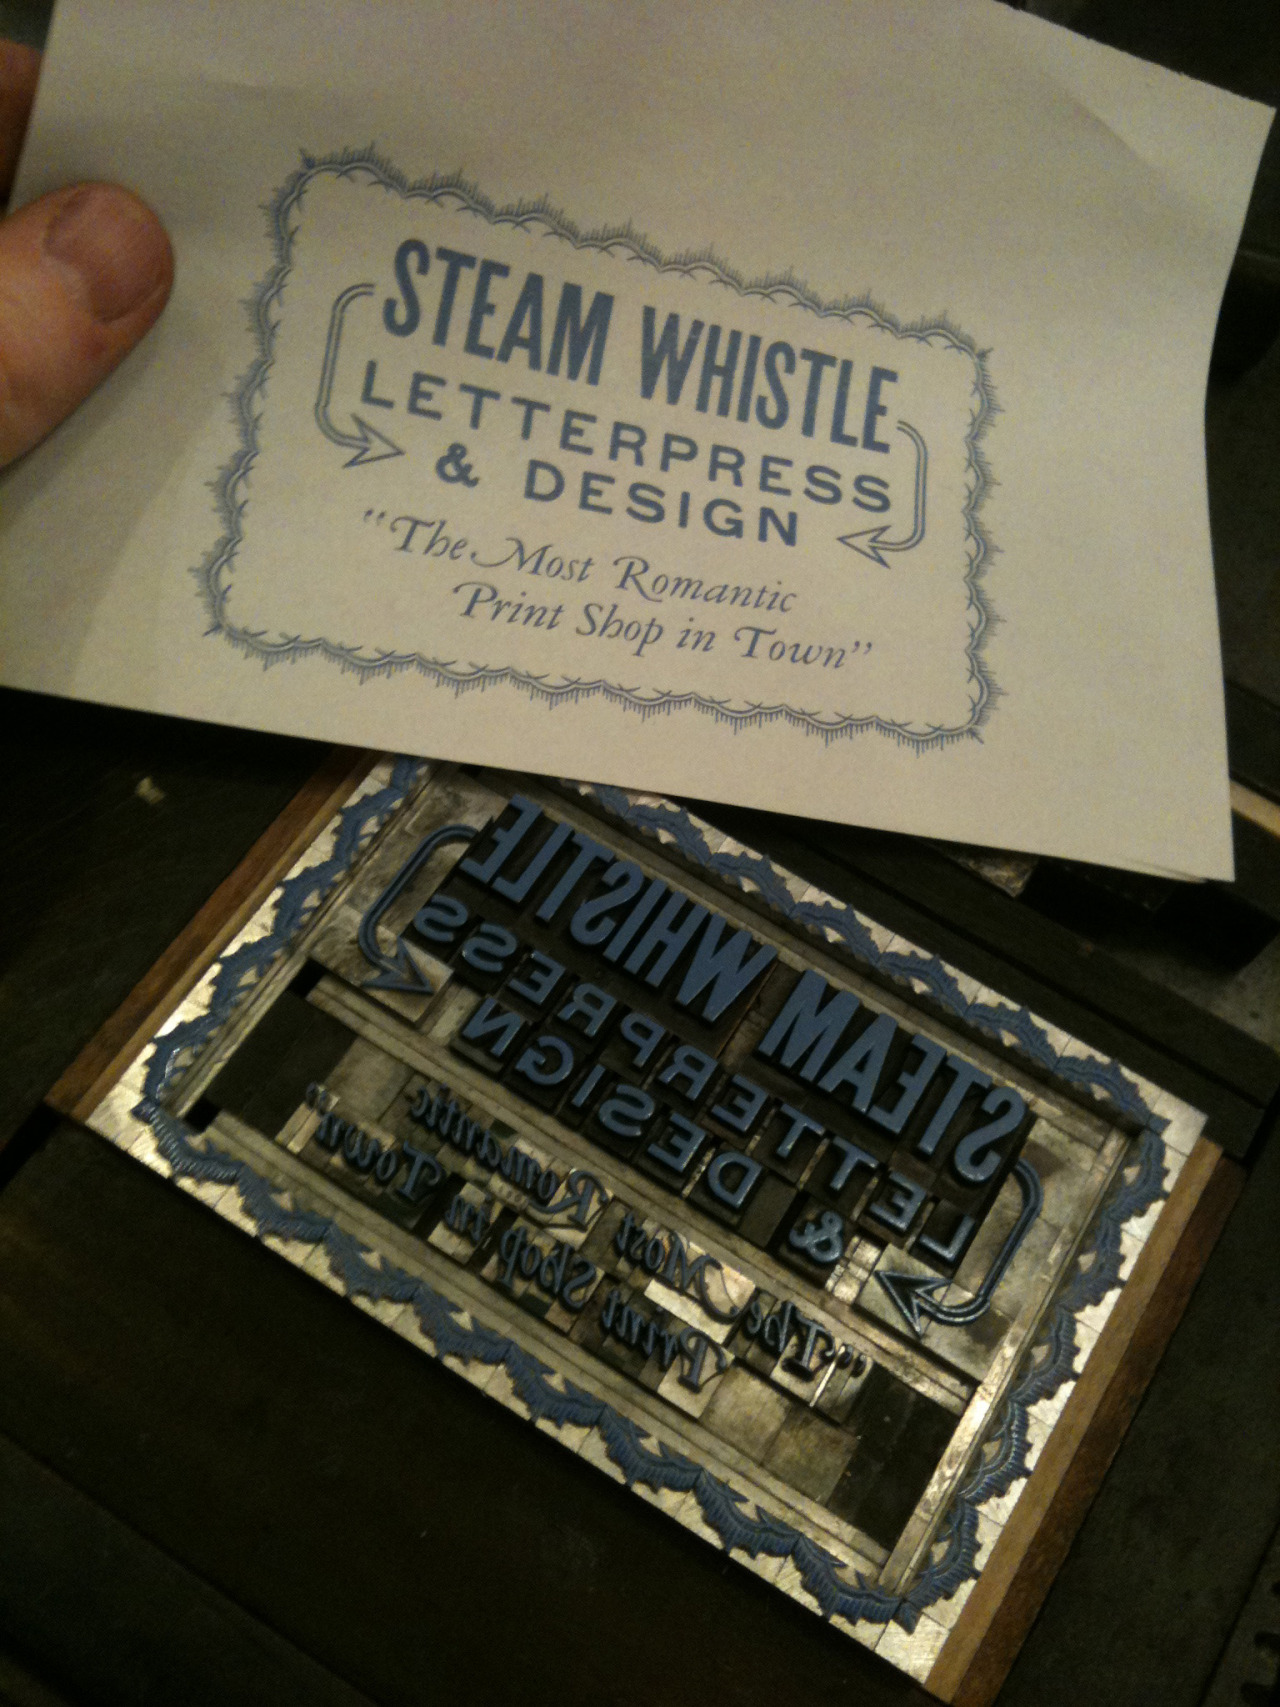 steamwhistlepress:   Here's a clearer shot of this morning's forme and proof. I actually really like setting type, it always looks so sharp.   If you like typography, you'll fall in love with Steam Whistle Letterpress and Design.